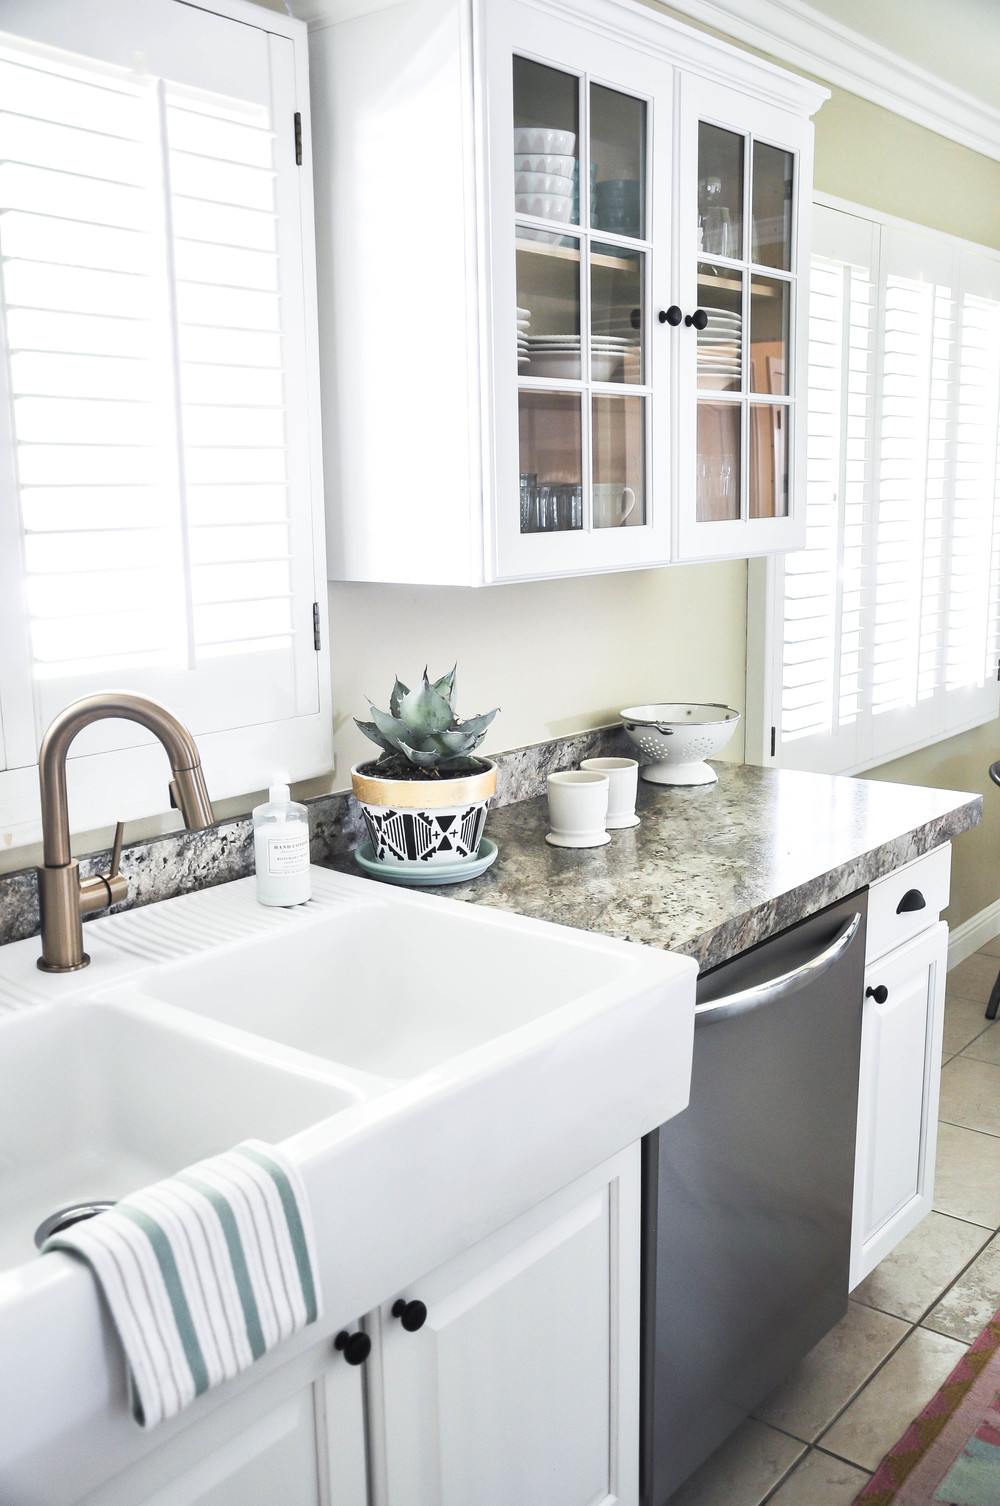 new white kitchen sink and appliances